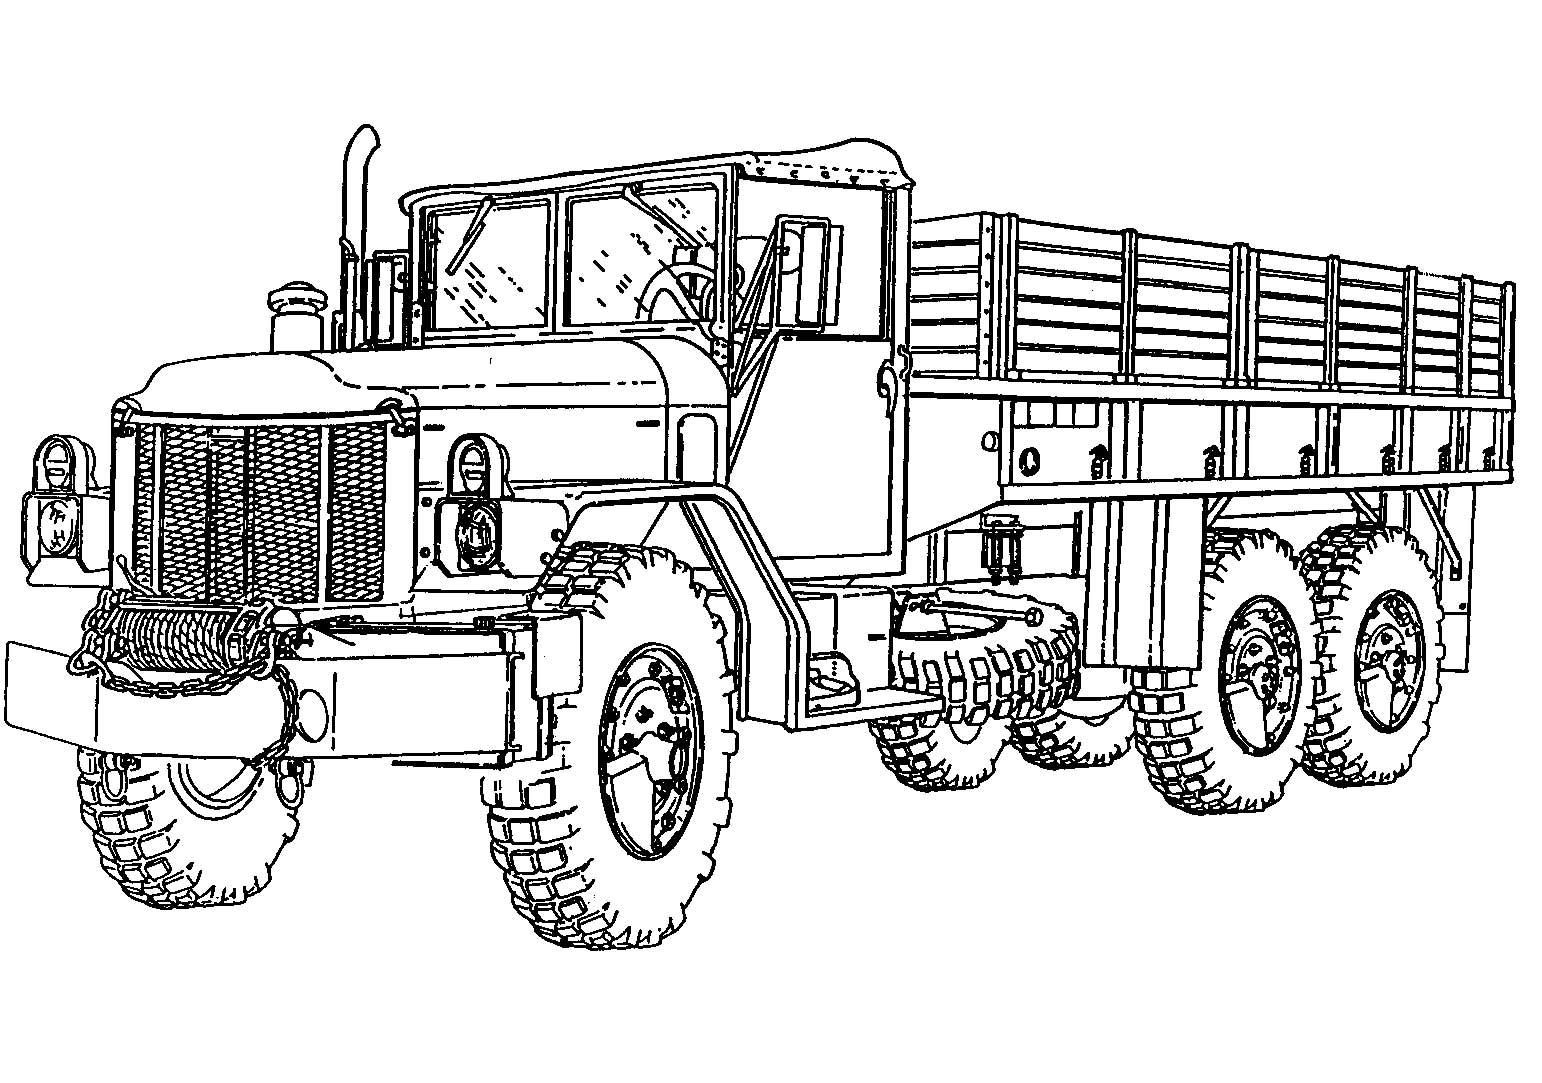 tanker truck coloring page tanker truck coloring pages at getcoloringscom free page truck tanker coloring